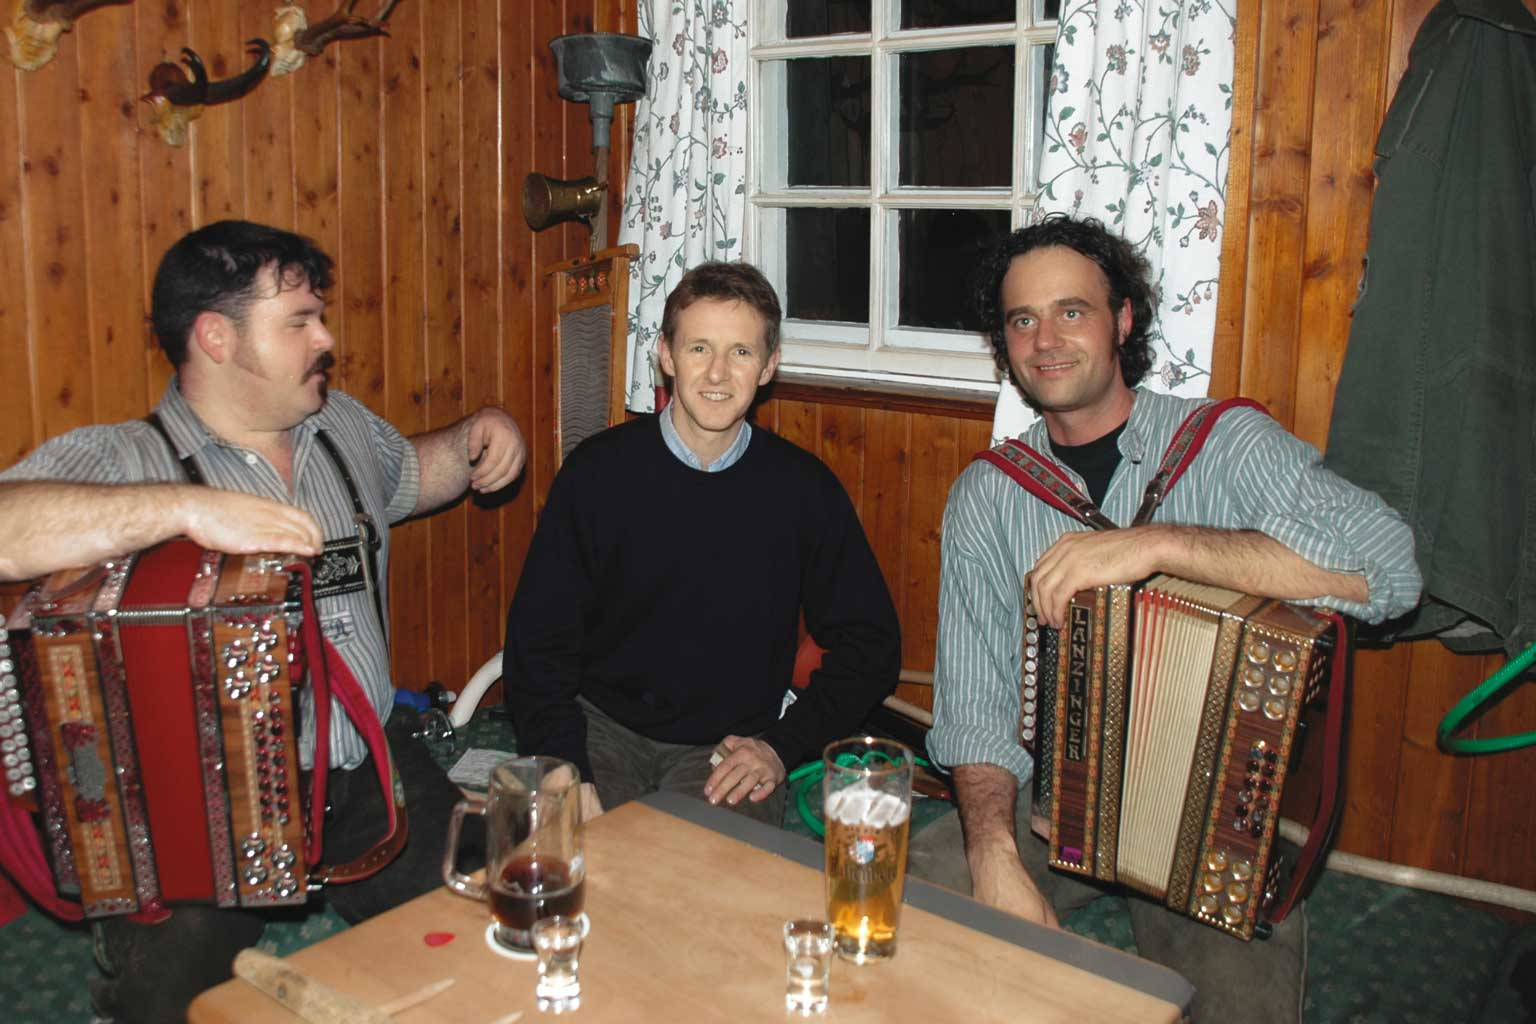 Team Event Four Hills Tournament Buderus Jens Weissflog and musicians